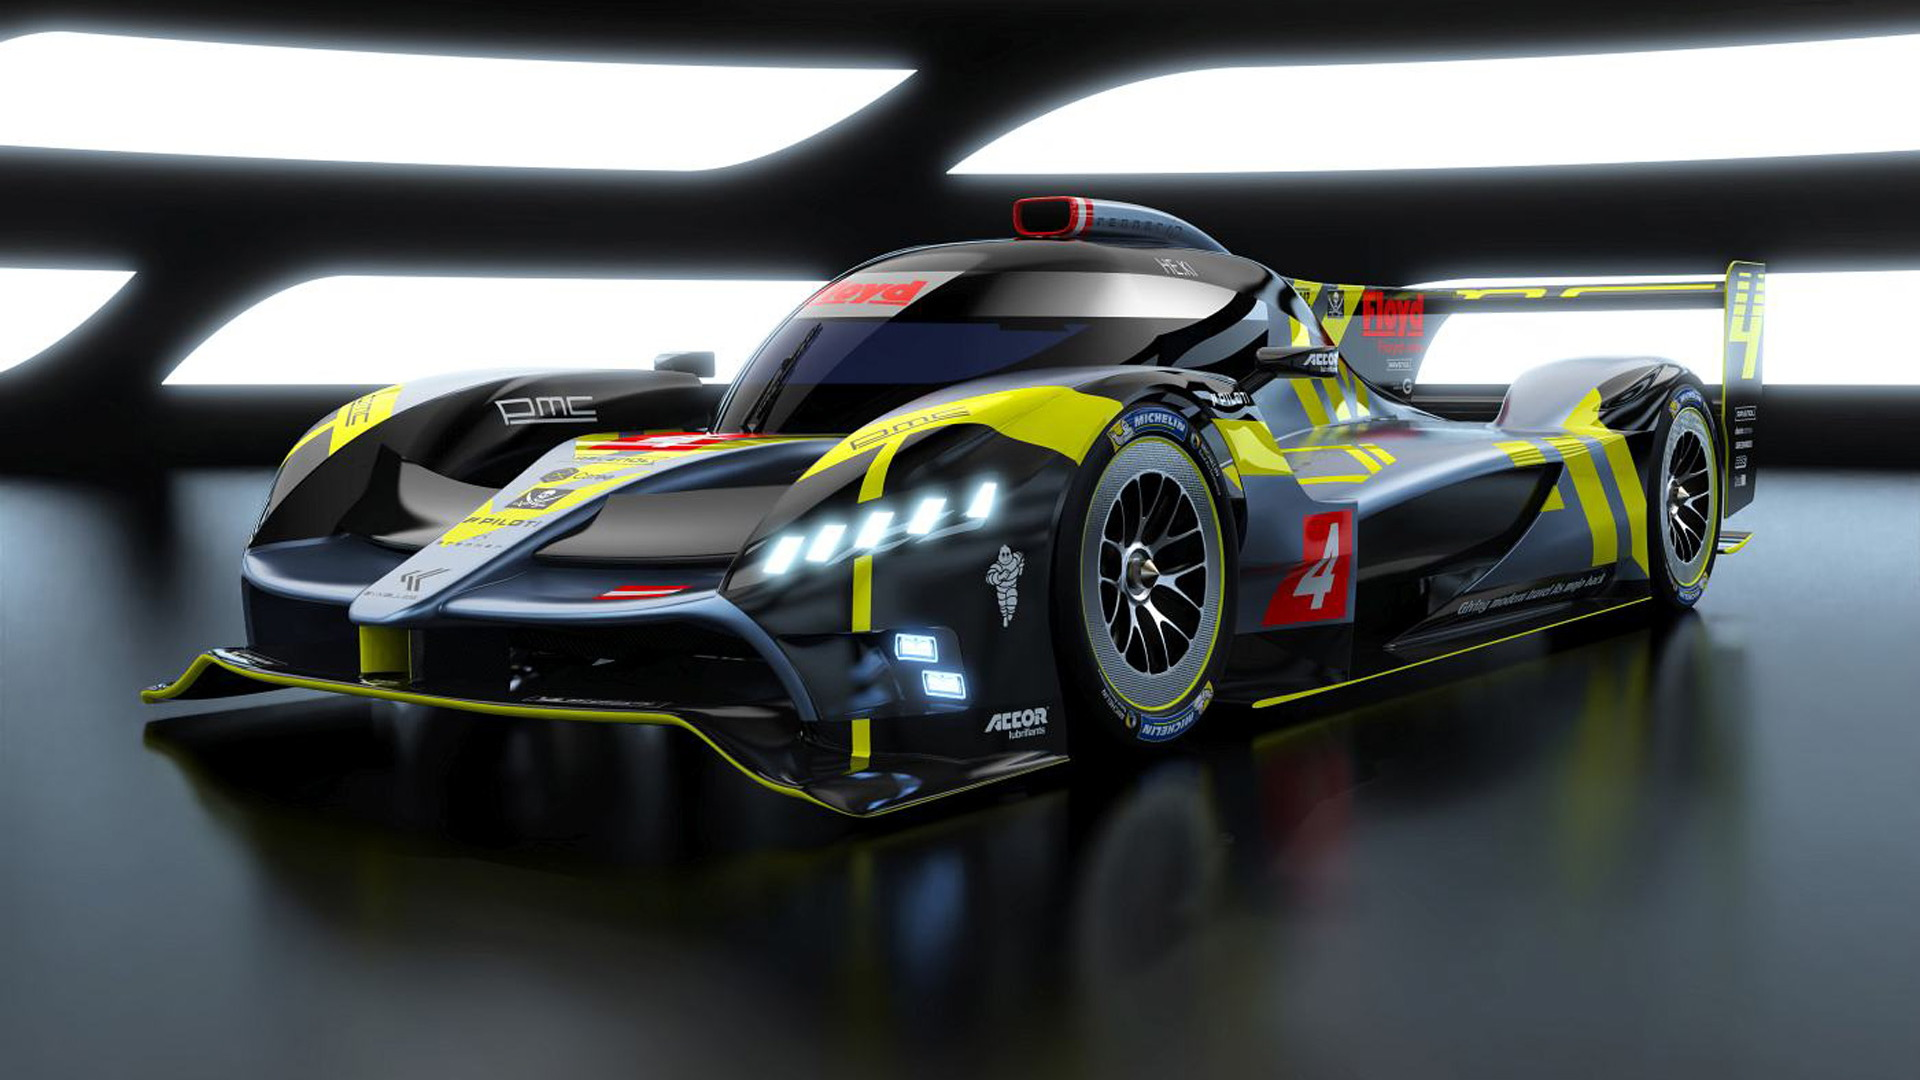 2021 ByKolles PMC Project Le Mans Hypercar race car